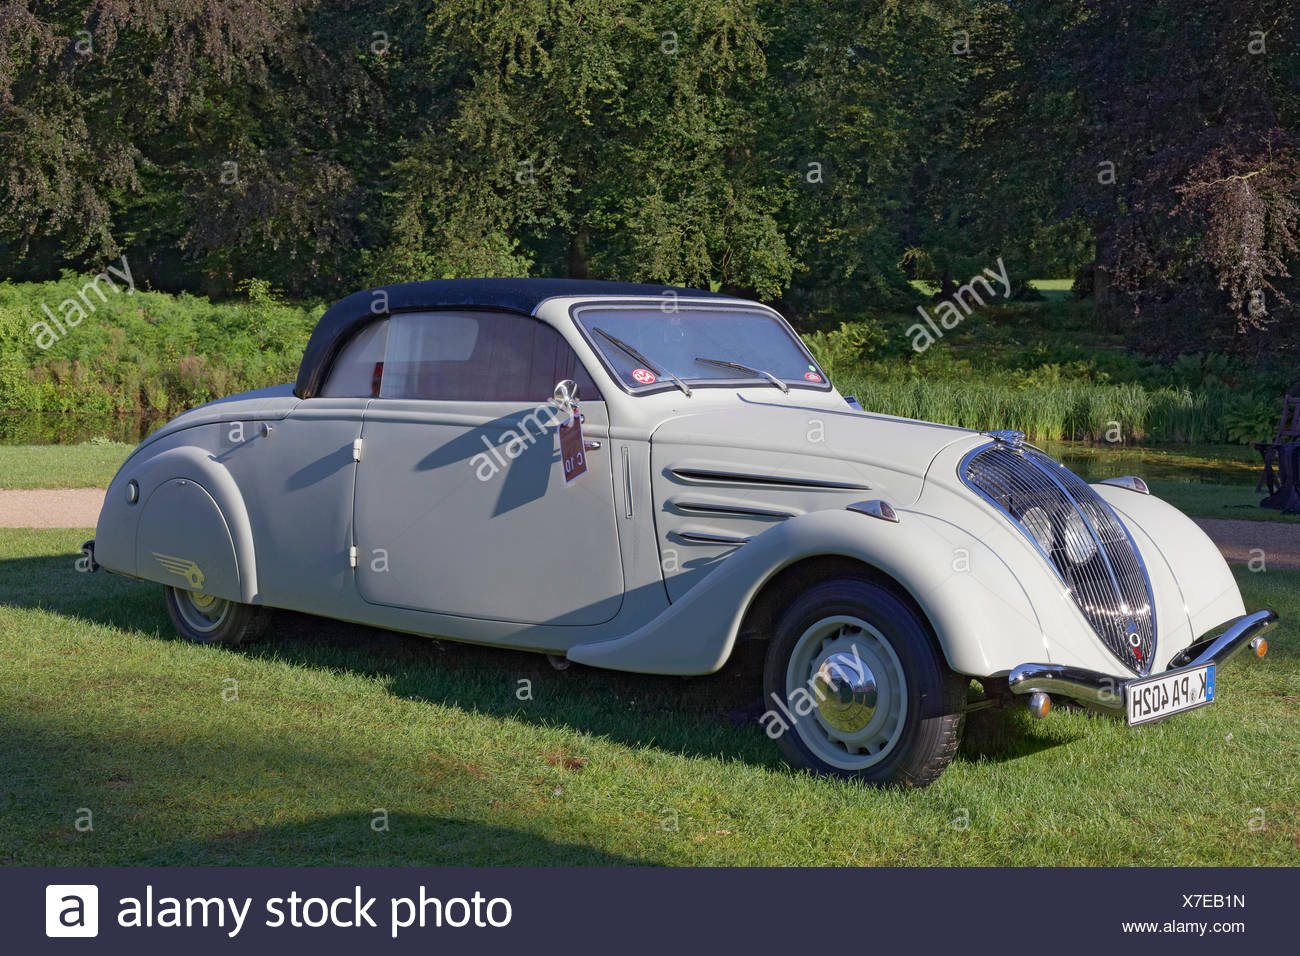 Peugeot 402 Eclipse, Cabriolet from 1940, classic French car, Schloss Dyck Classic Days 2016 Jüchen, Niederrhein - Stock Image